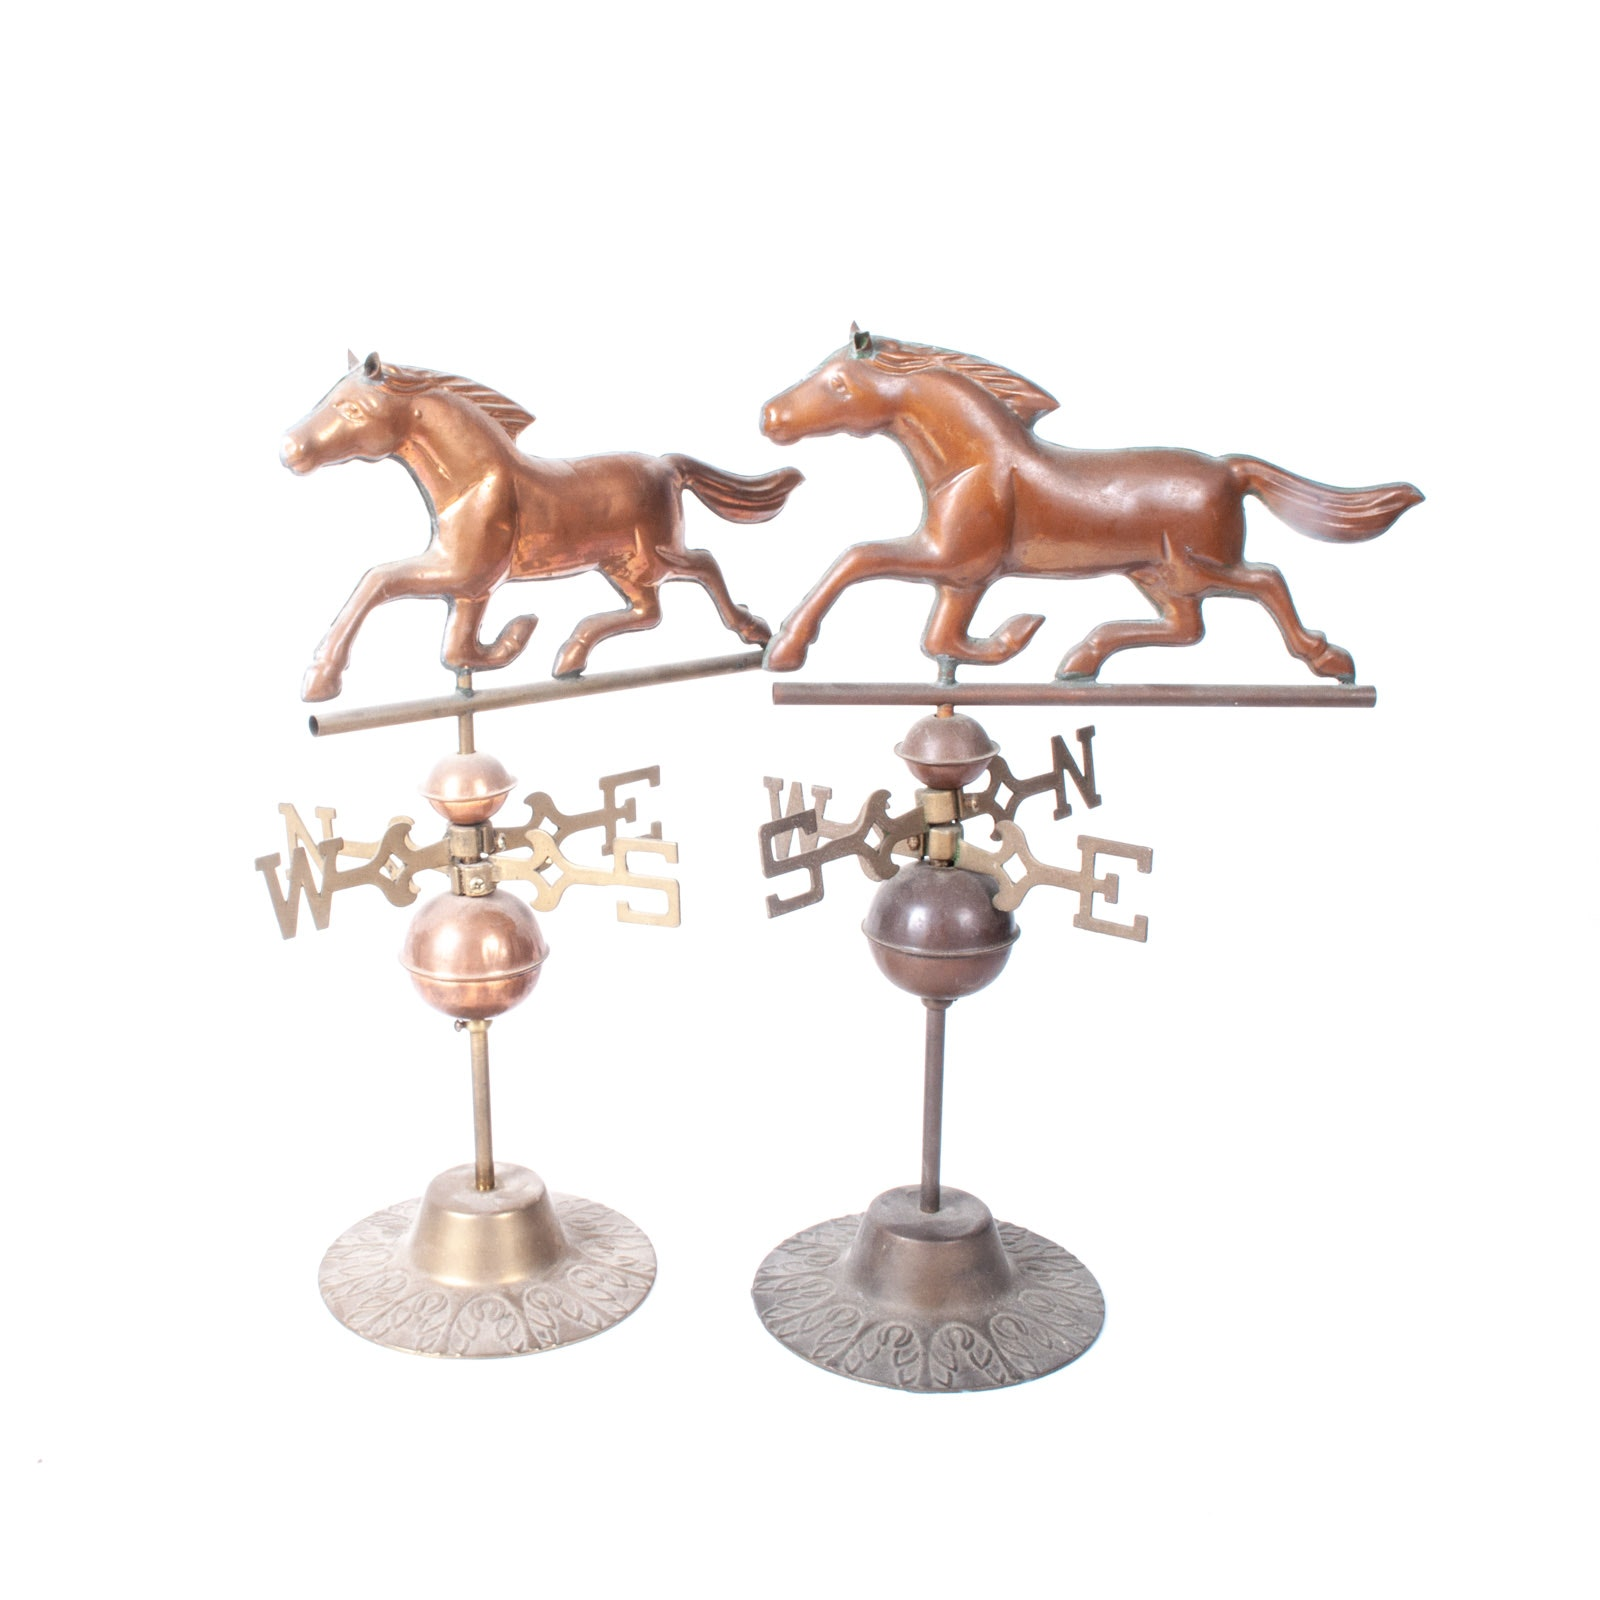 Pair of Vintage Brass and Copper Horse Weathervanes